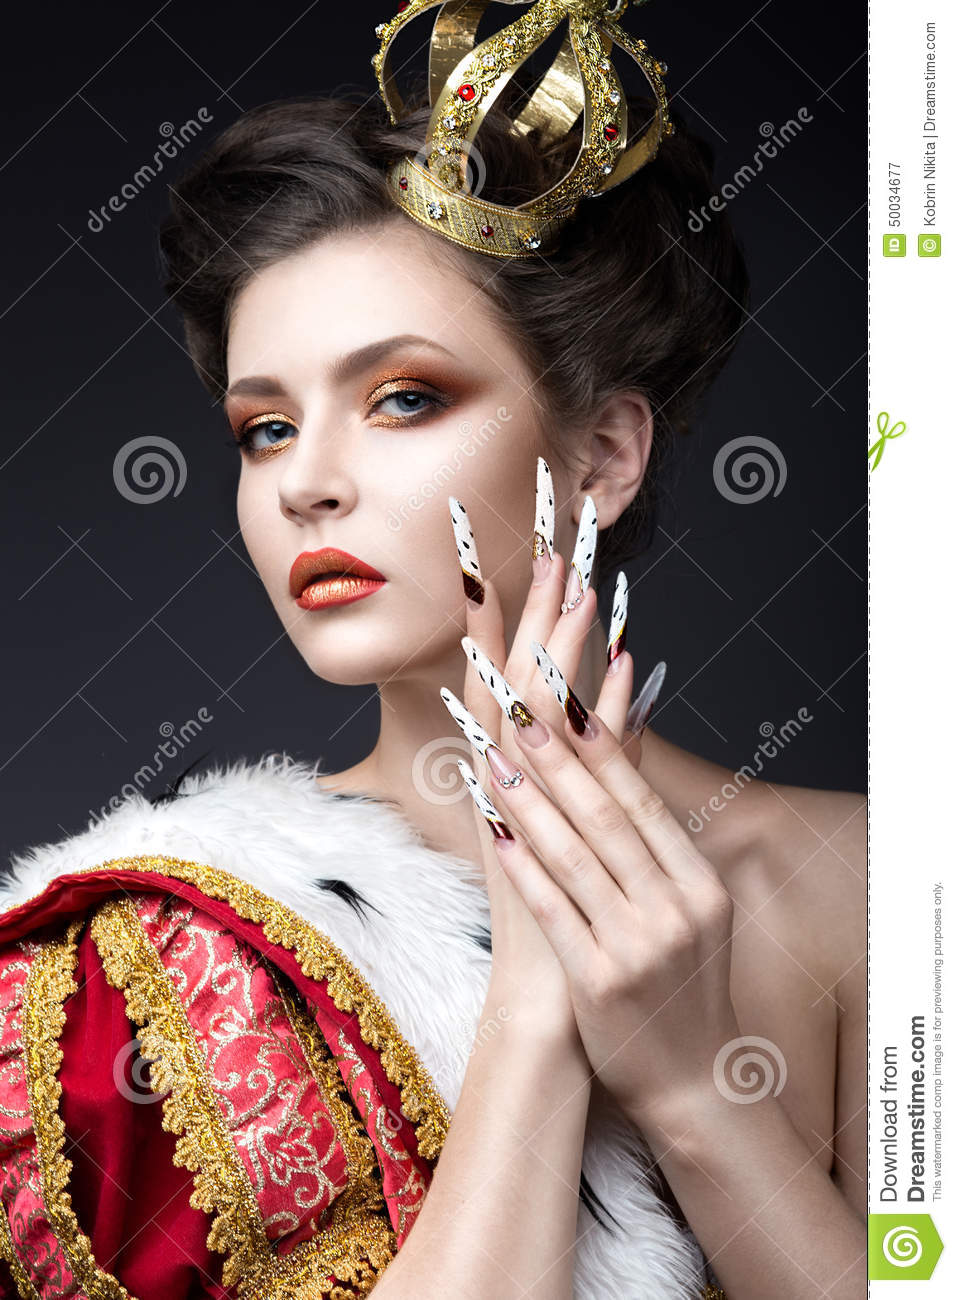 Beautiful Girl In The Image Of The Queen In The Mantle